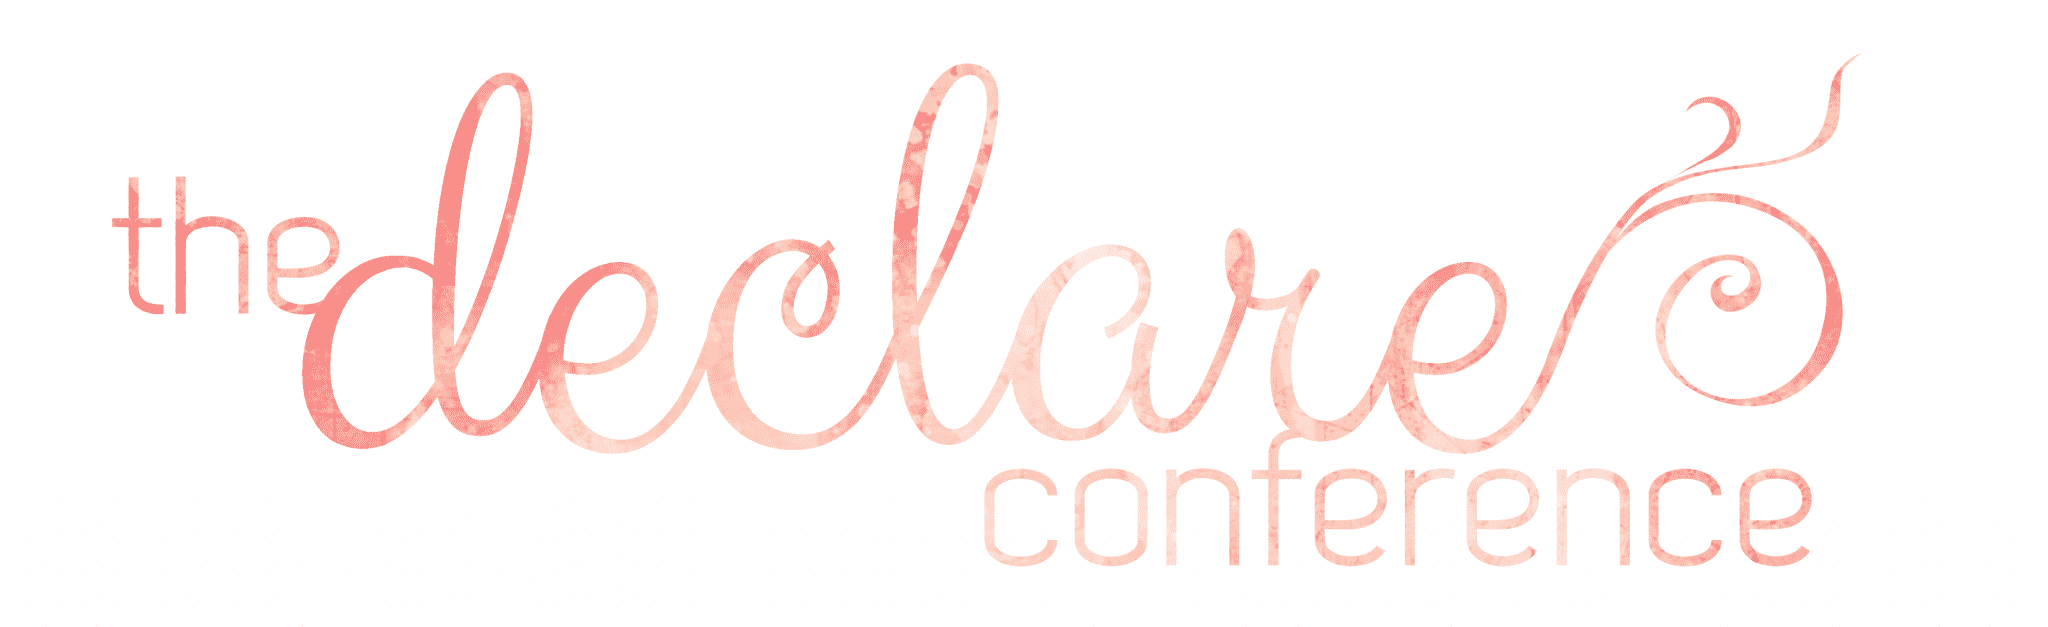 thedeclareconference-logo